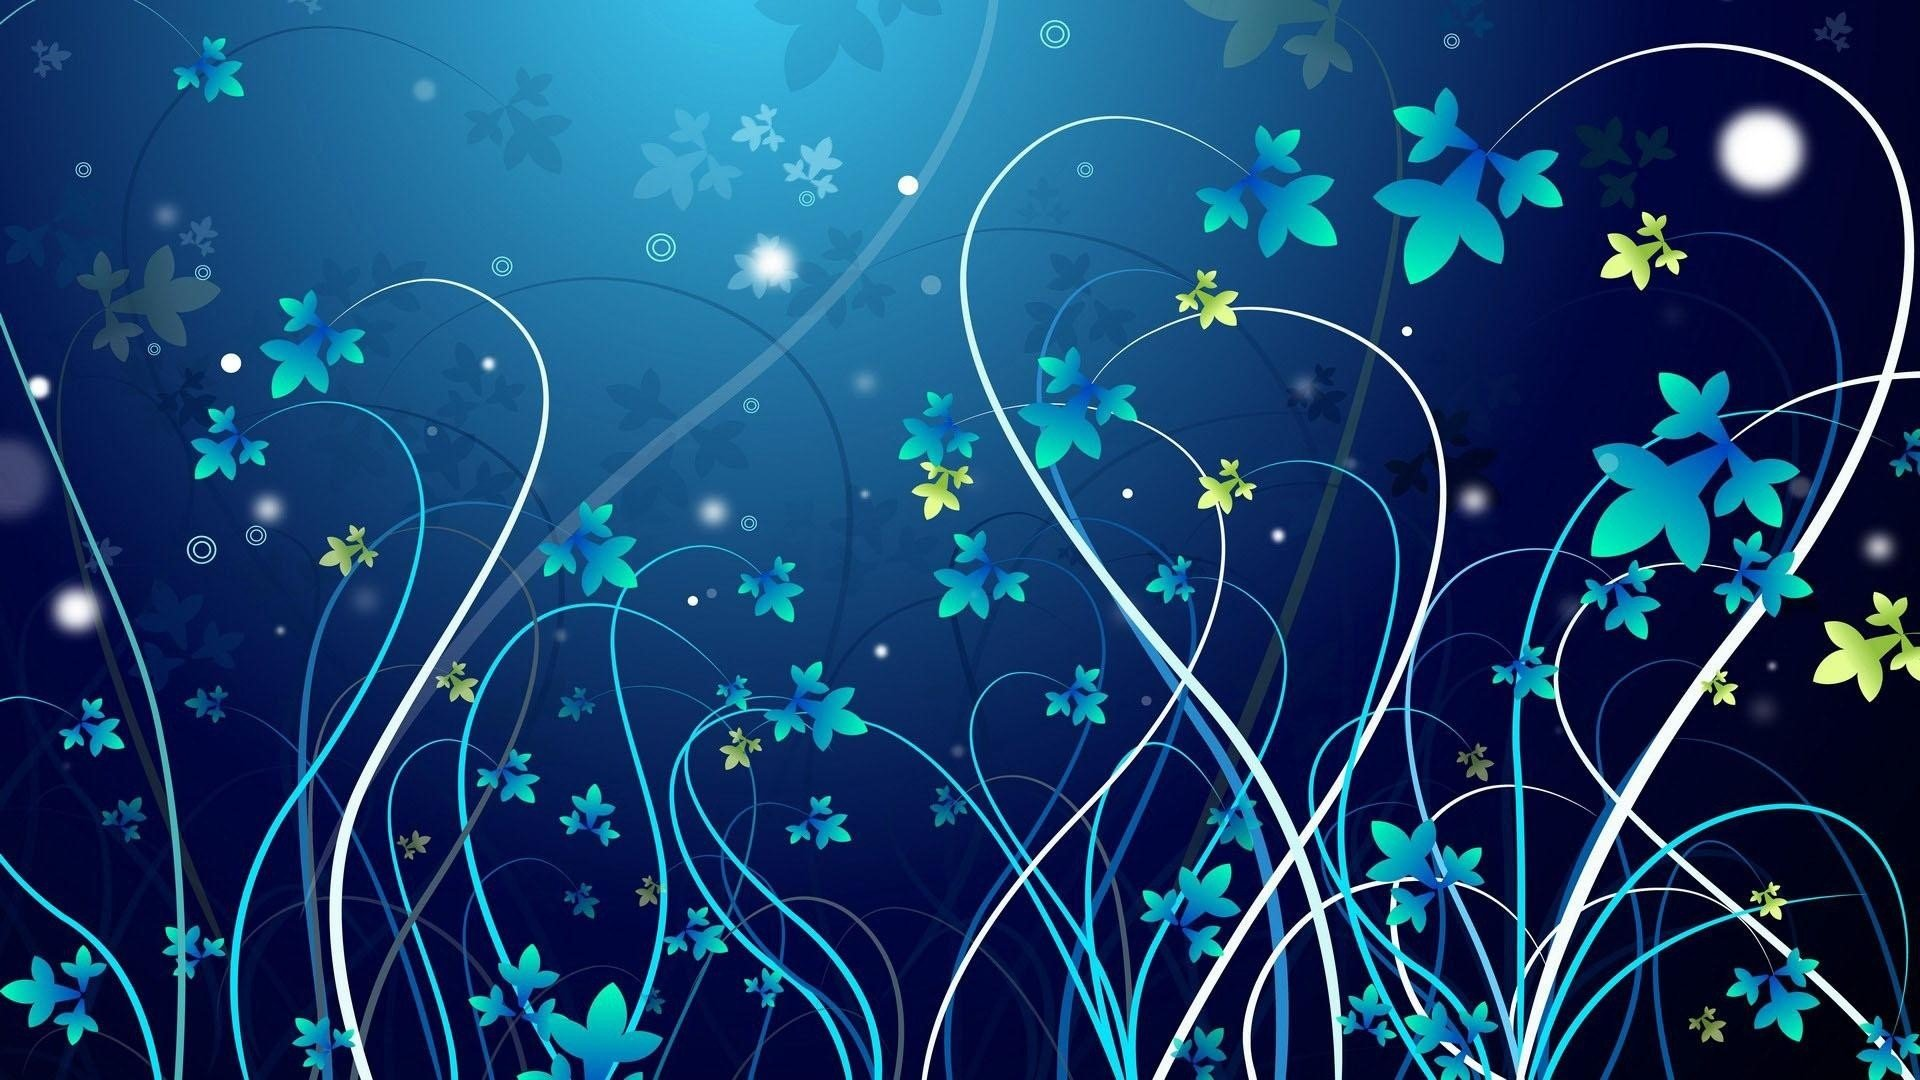 Beautiful Blue Vectors Wallpapers HD Wallpapers 1920x1080